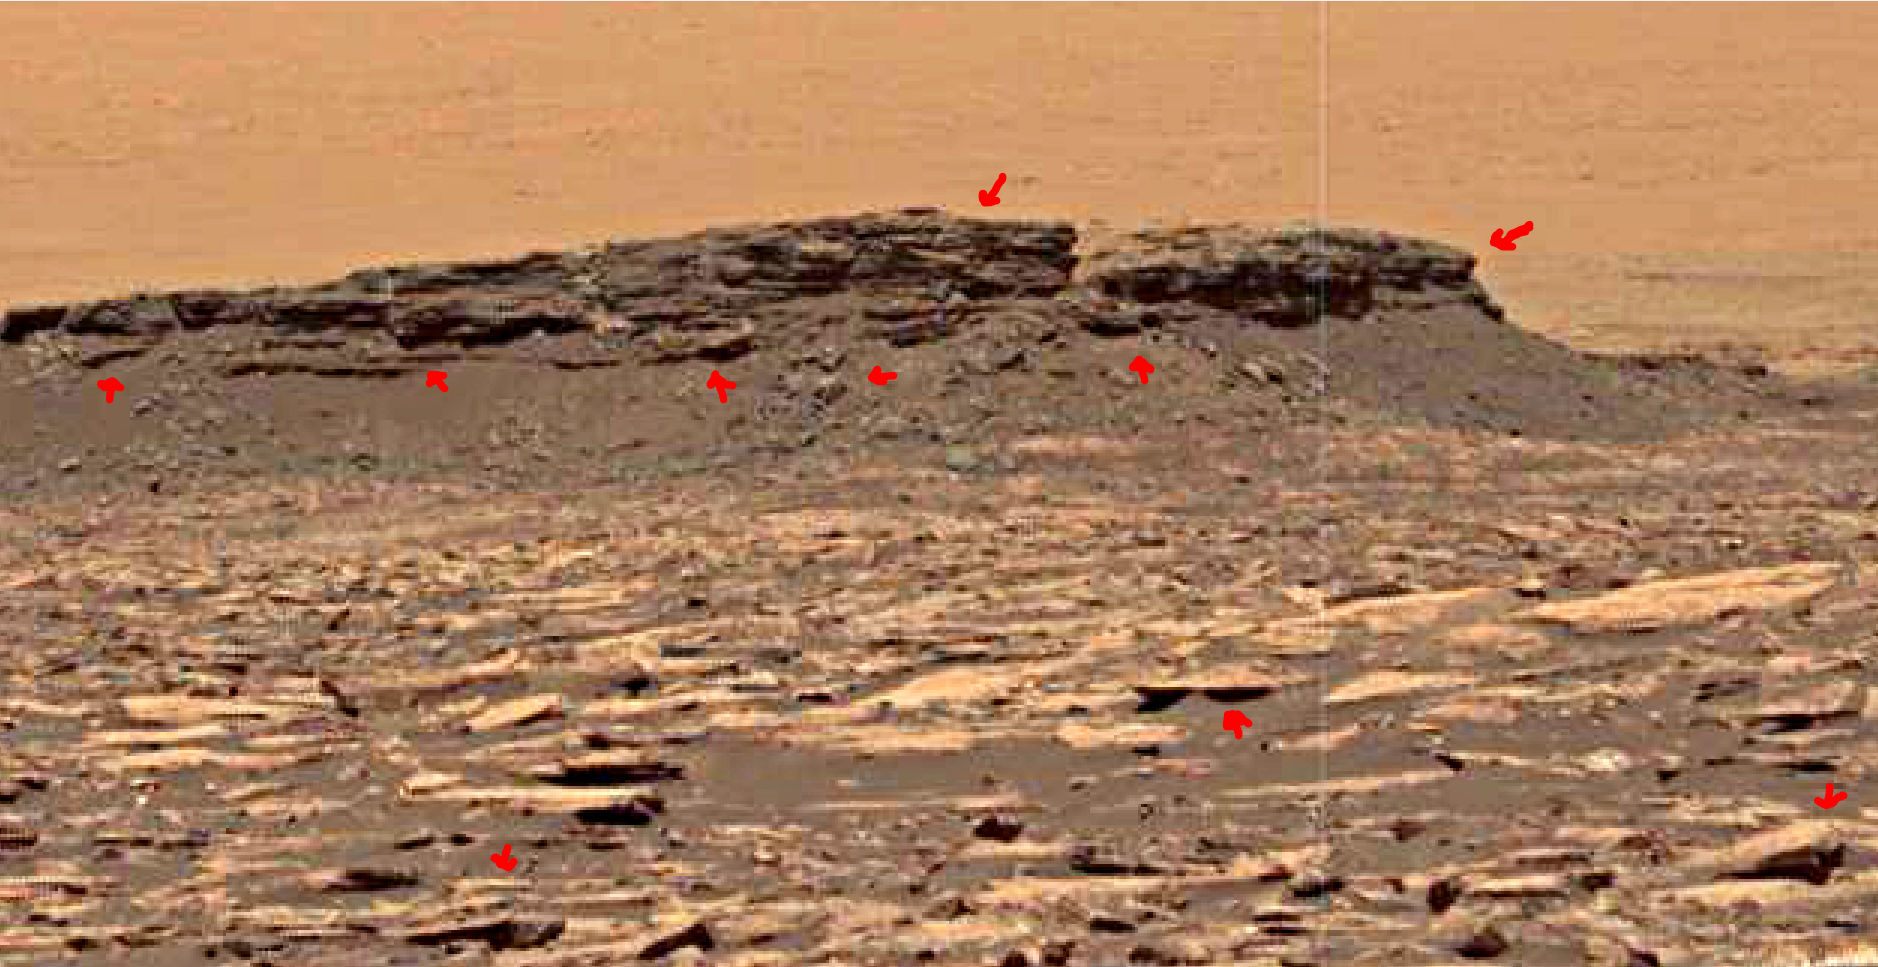 mars-sol-1507-anomaly-artifacts-11-was-life-on-mars